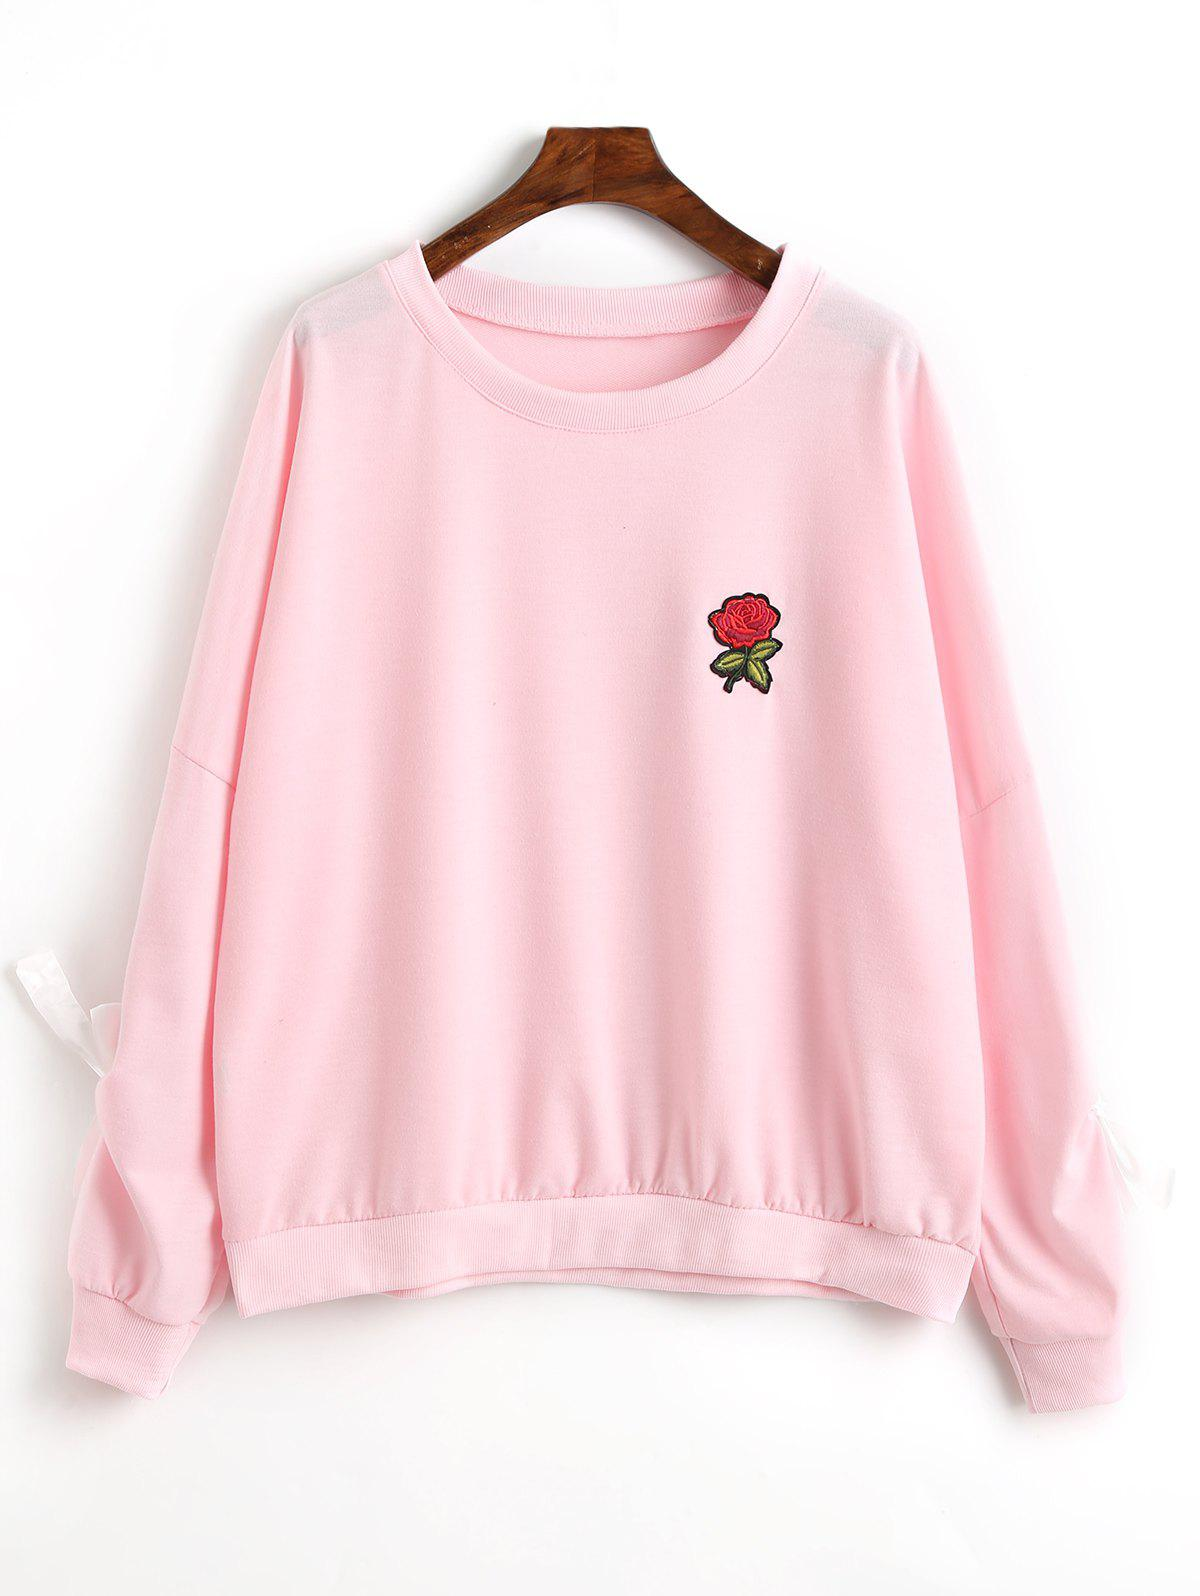 Sweat-shirt à Applique Floral Décoratif - ROSE PÂLE S